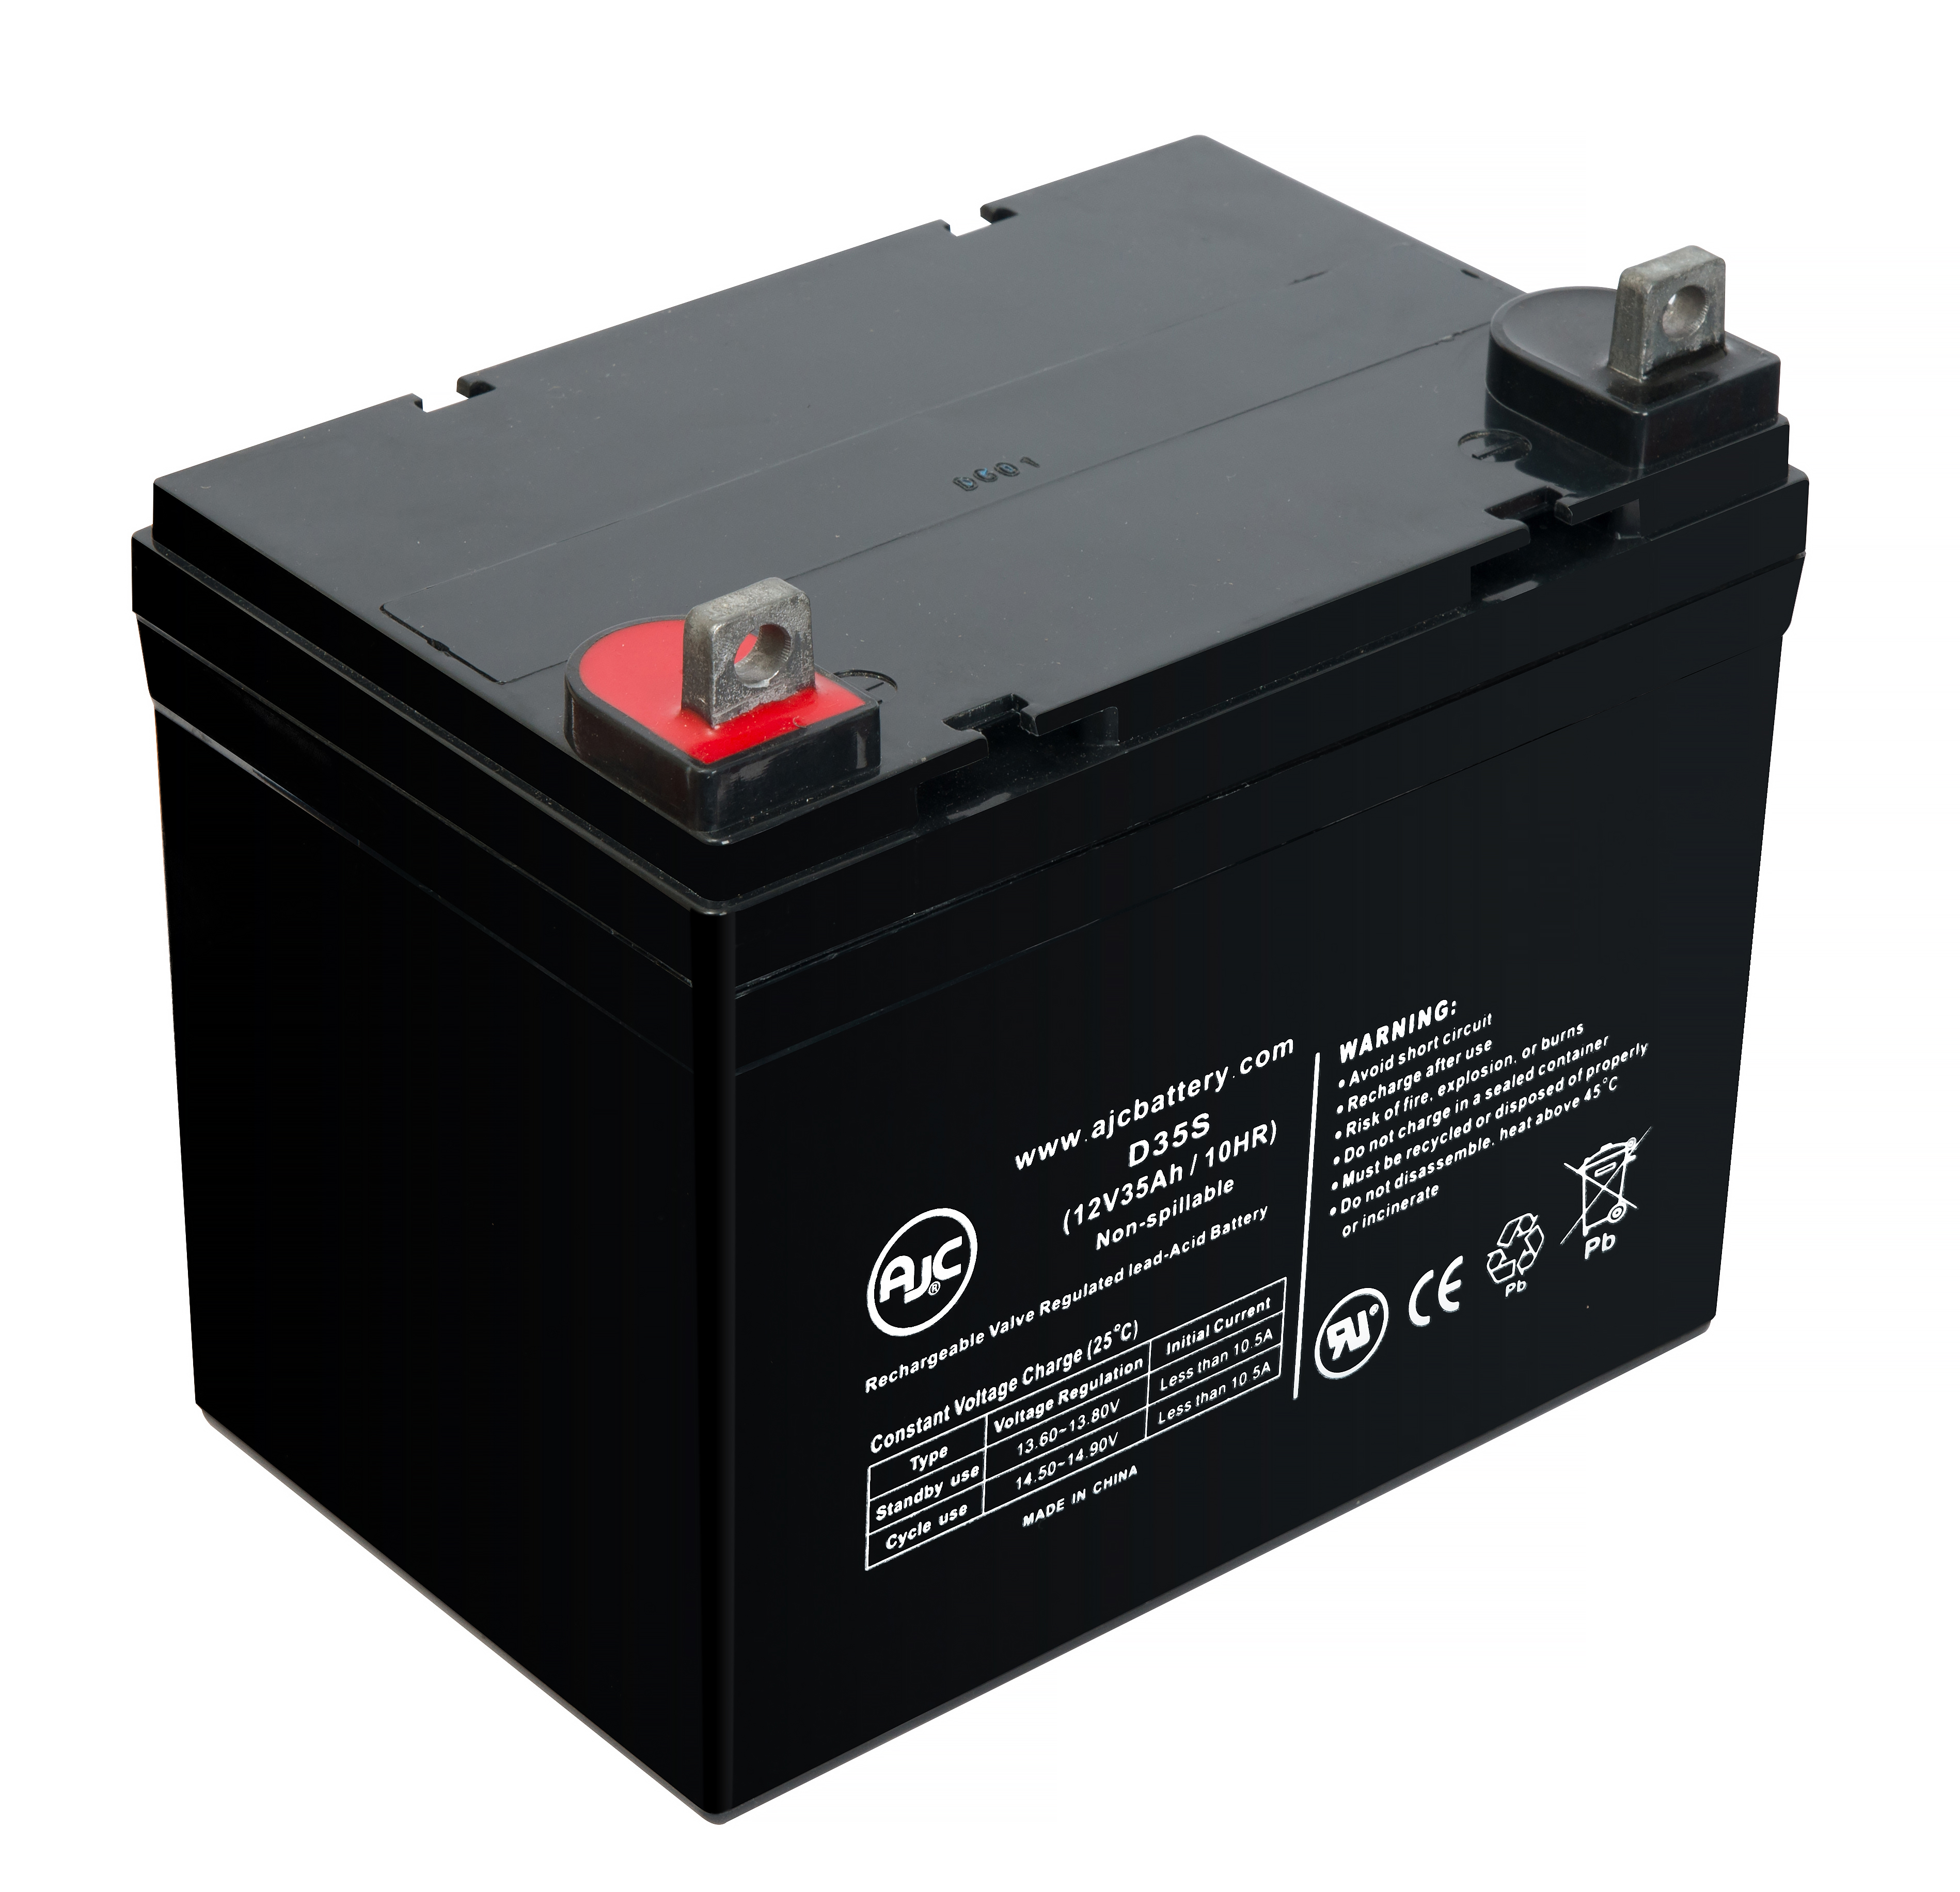 Mambo 319 12V 35Ah Wheelchair Battery - This is an AJC Brand® Replacement